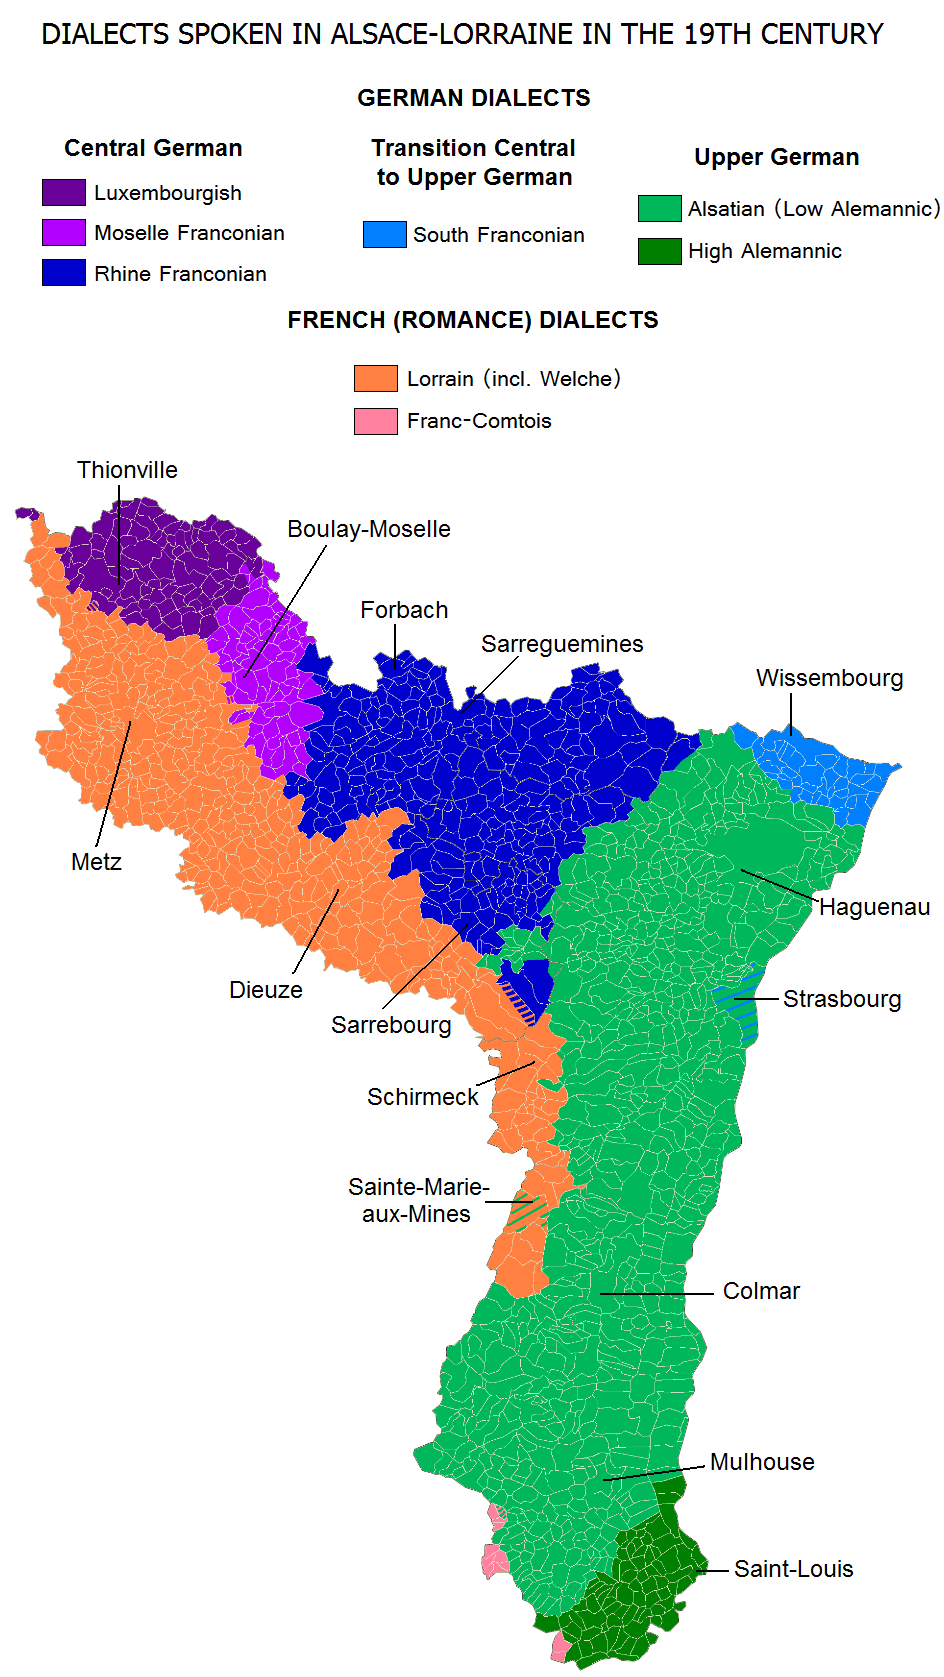 Alsace-Lorraine_Dialects